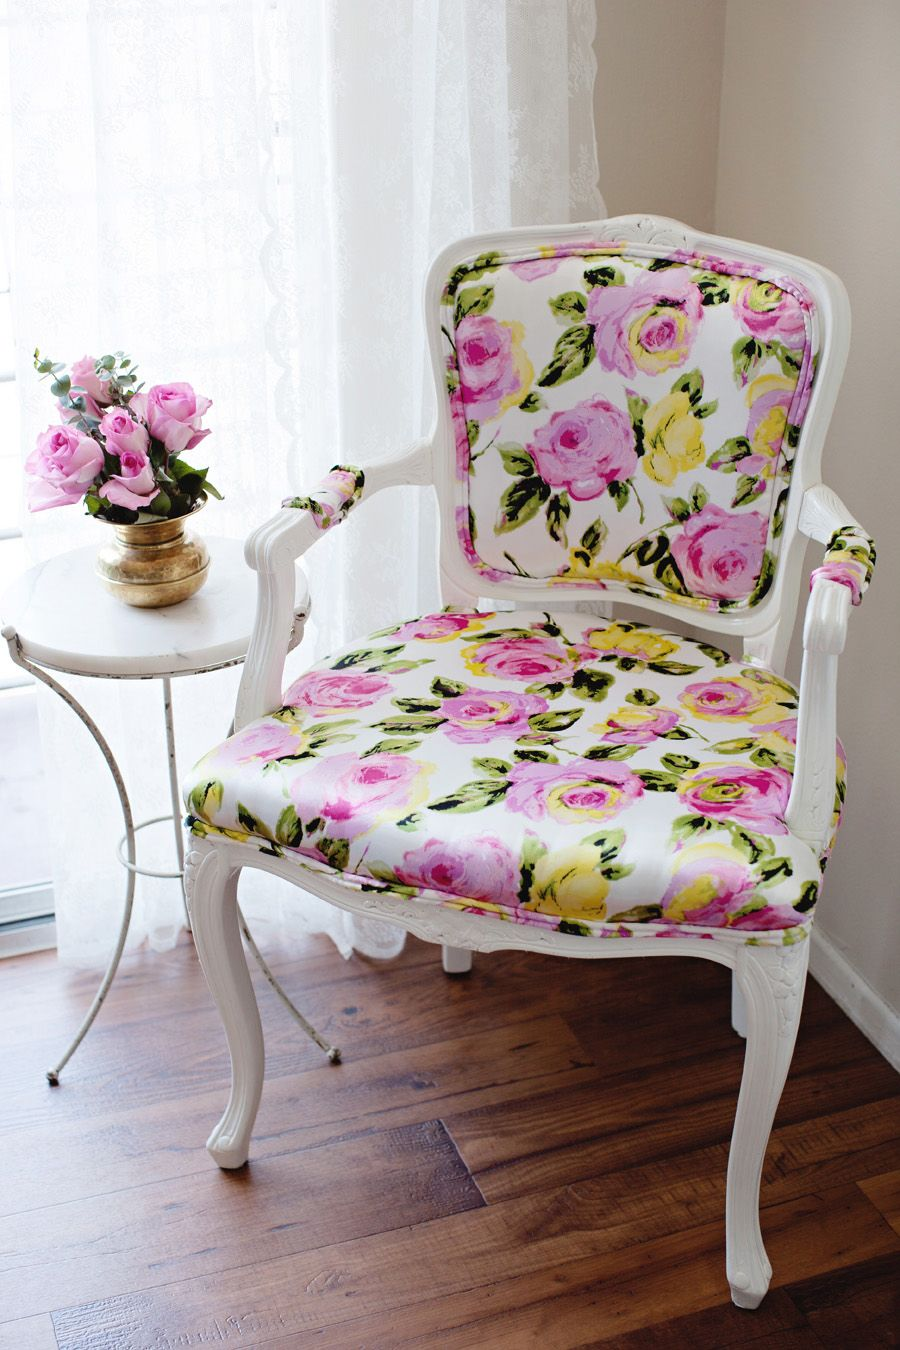 Diy chair upholstery - Diy I Reupholstered Our Bergere Chair With Florals